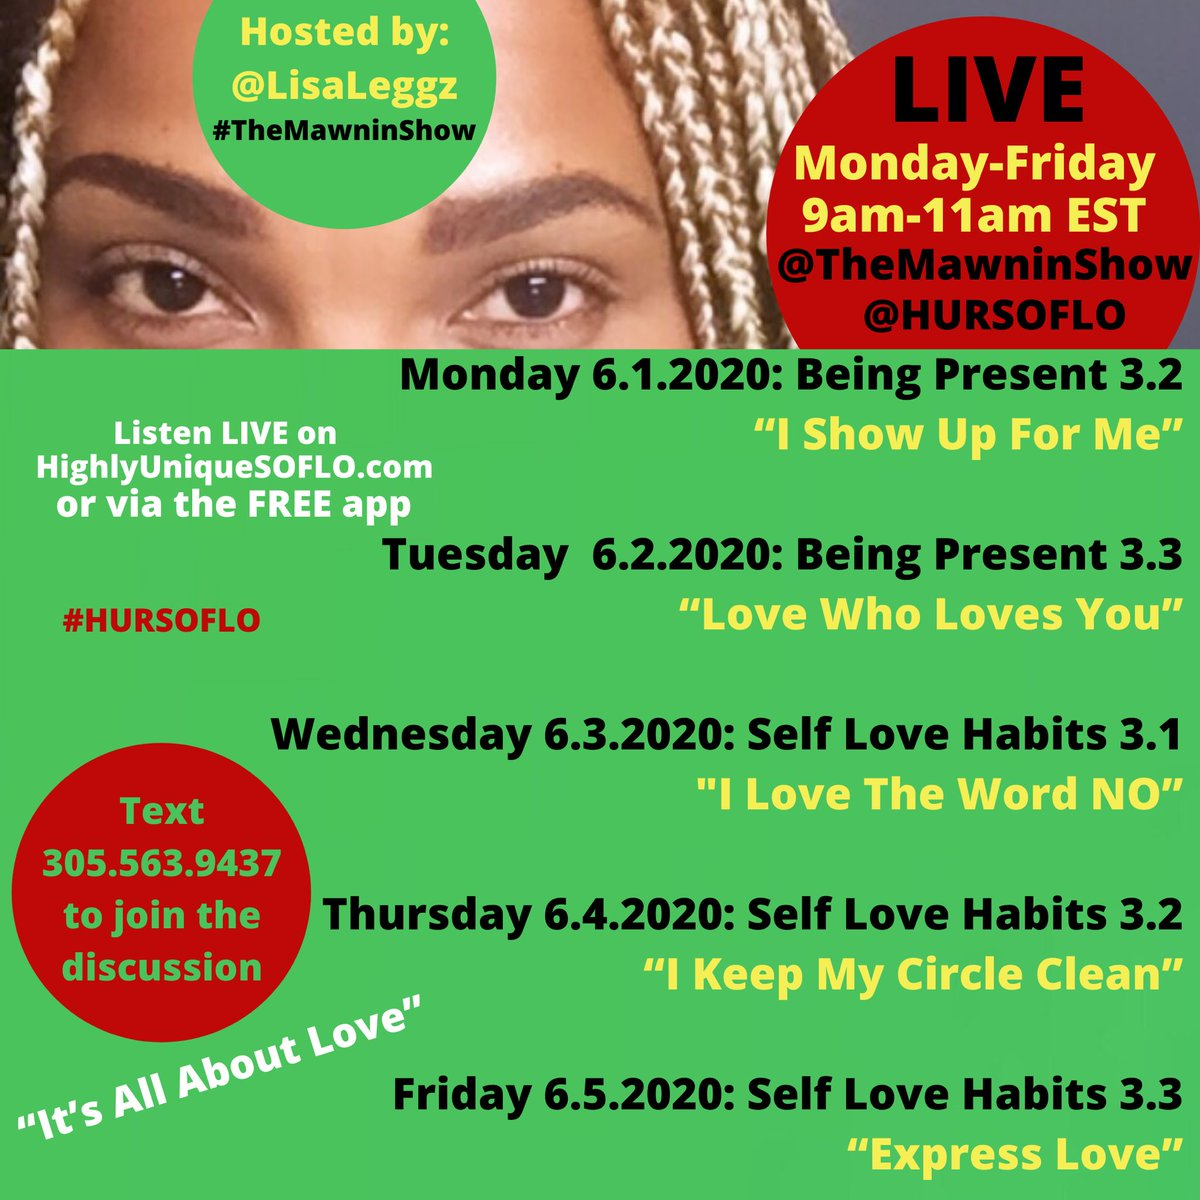 It's an intense we we have ahead of ushere are #themawninshow topics and #affirmations to keep us centered and anchoring love tune in at http://highlyuniquesoflo.com/hursoflo  or the #hursoflo #freeapppic.twitter.com/3PJEmbGtuh